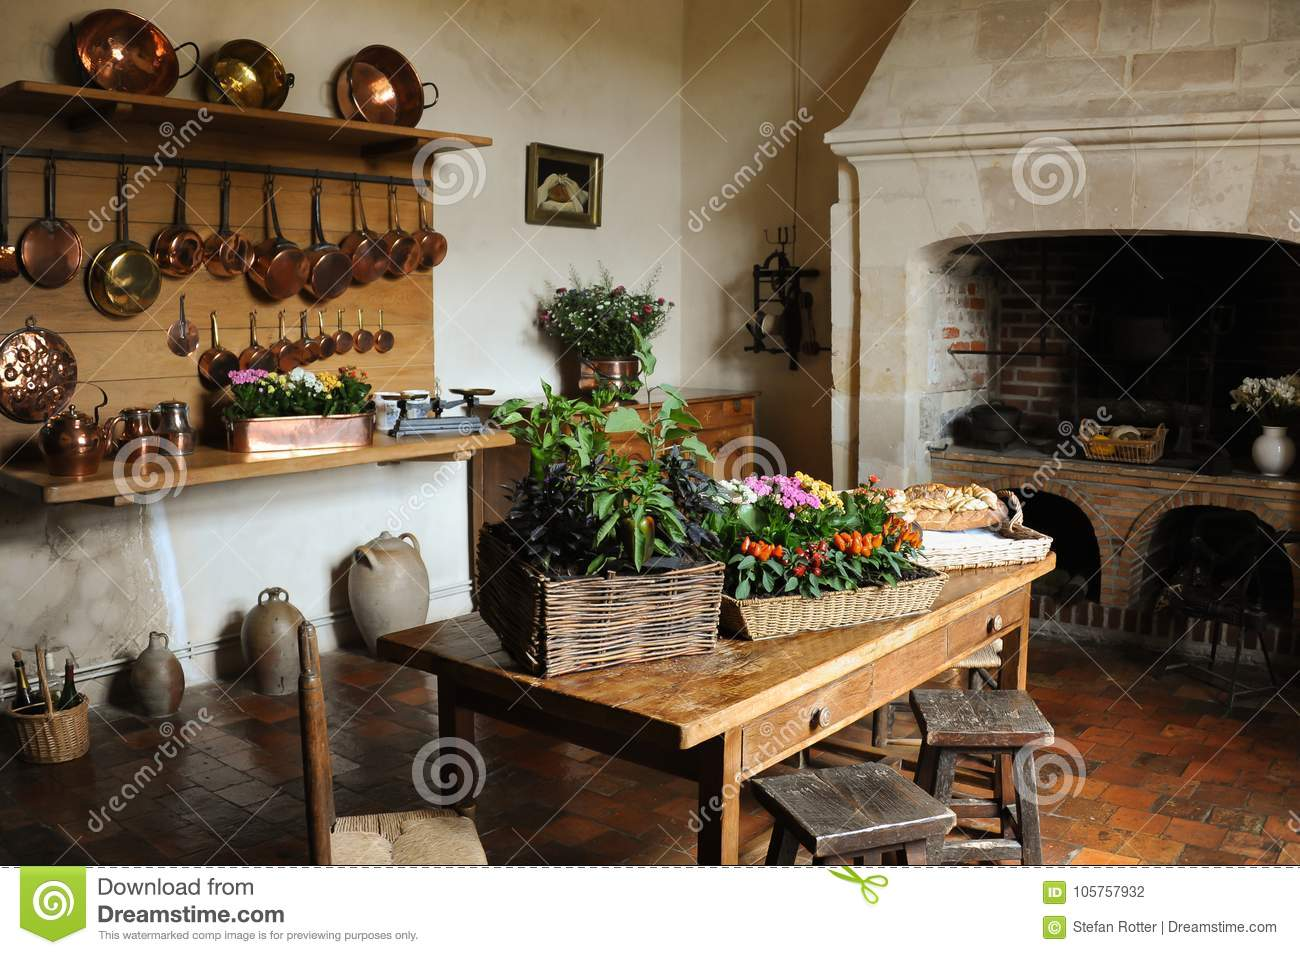 Old Medieval Kitchen Copper Pans Fireplace Table Chairs